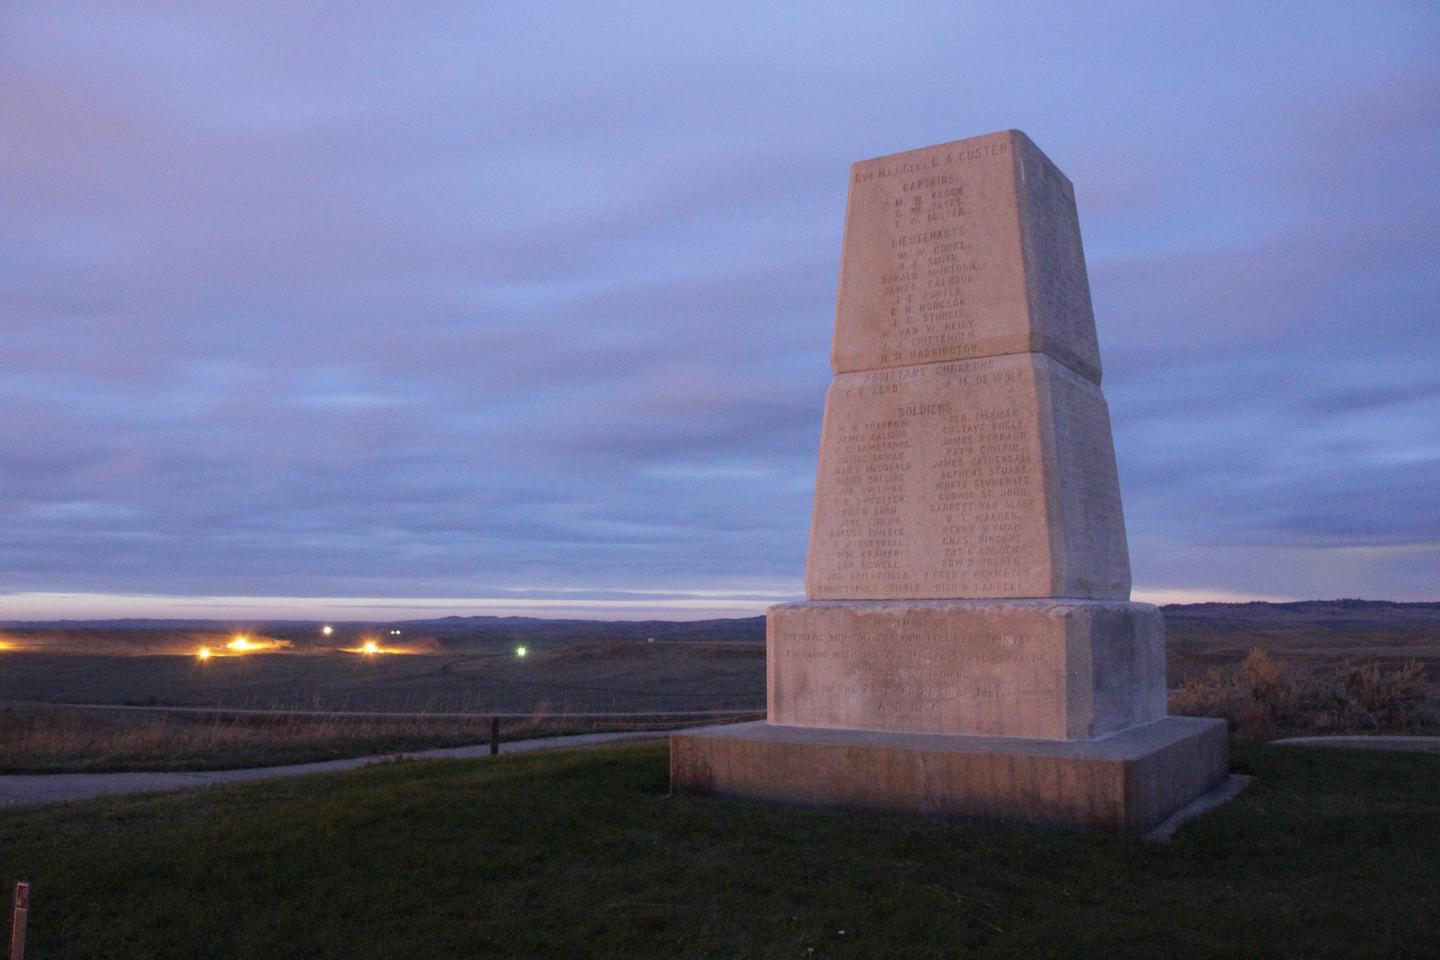 Seventh Calvary MemorialAbout 40 to 50 men of the original 210 were cornered on the hill where the monument now stands.